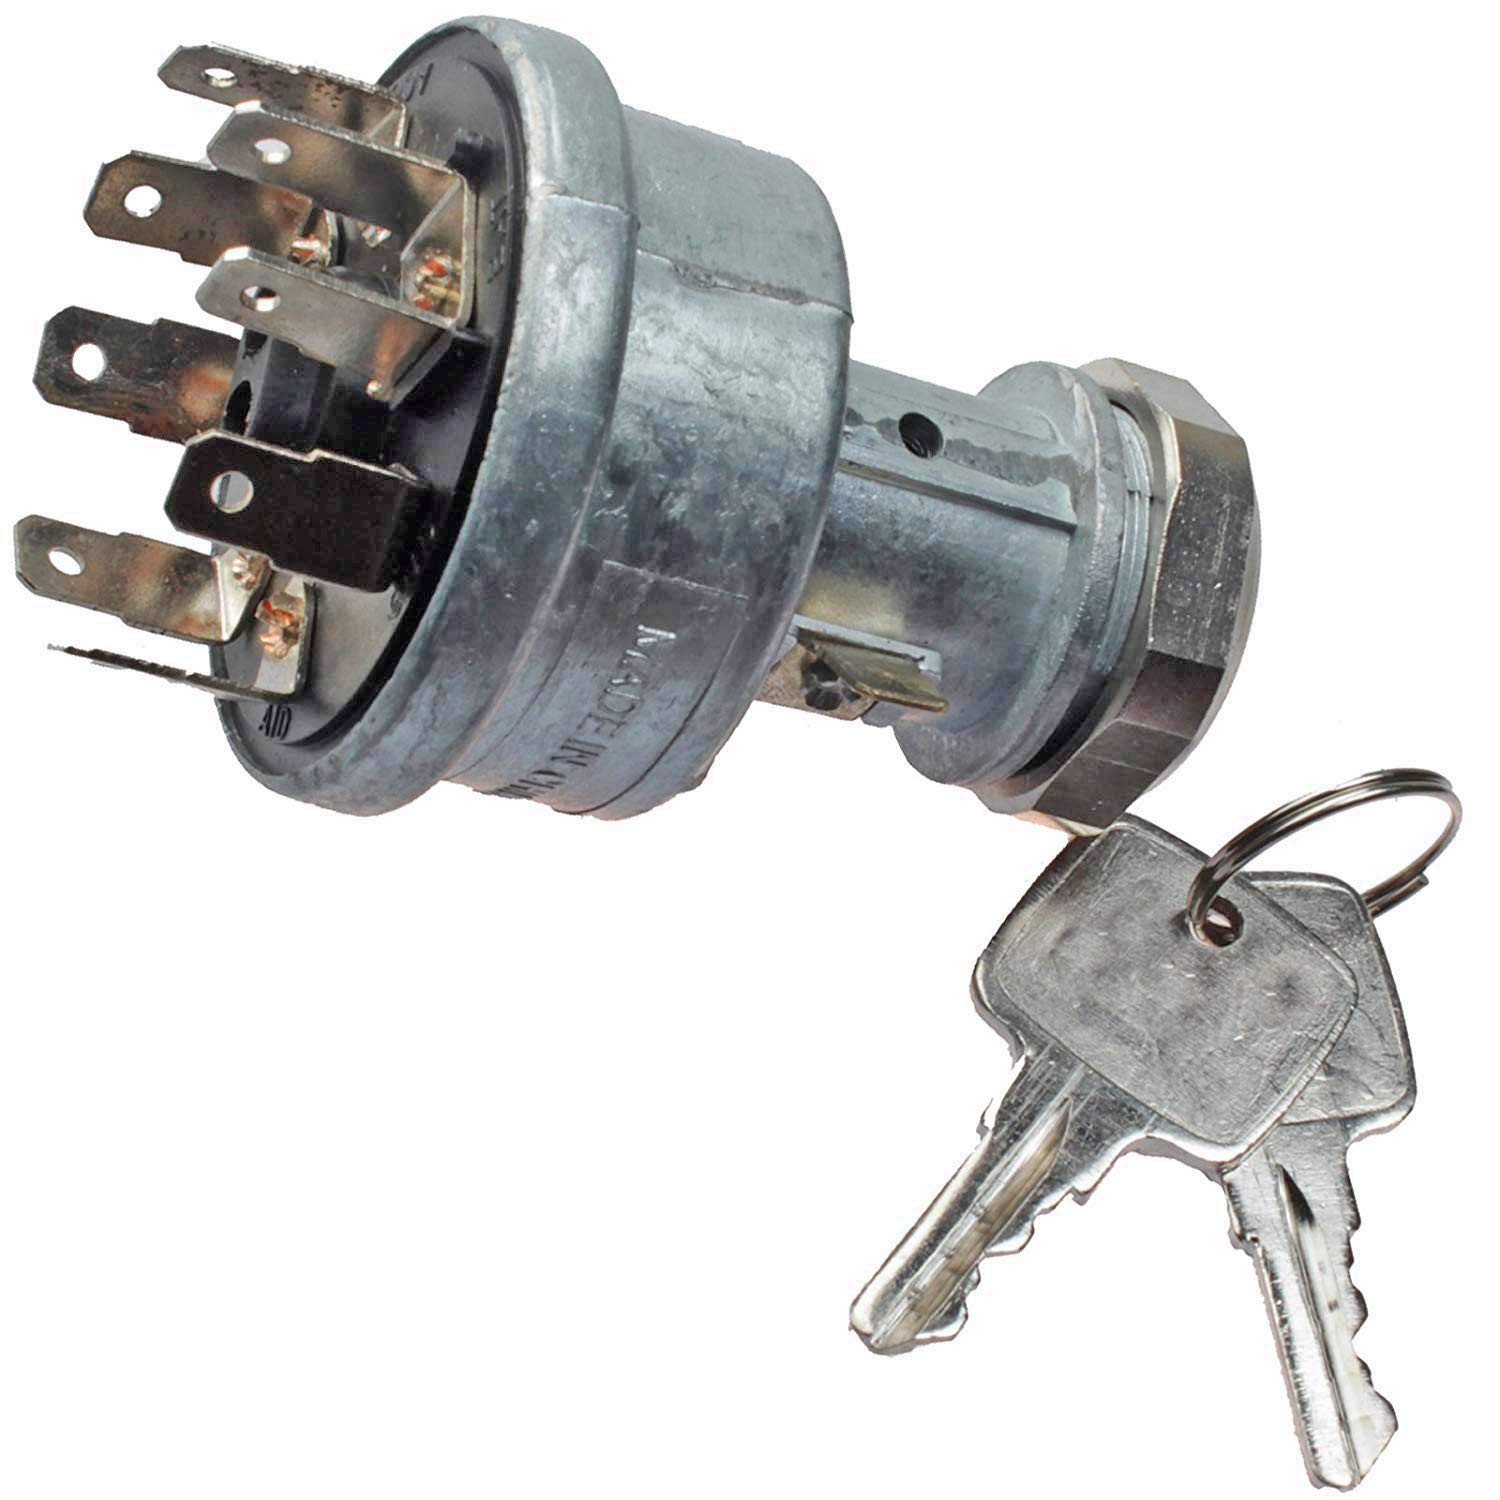 Mover Parts Ignition Switch With 2 Keys RE45963 for John Deere Tractors 4200 4300 4400 4500 4600 4700 5200 5300 5400 5500 5600 5700 5210 5310 5410 5510 6300 6500 6600 904 1054 1204 1354